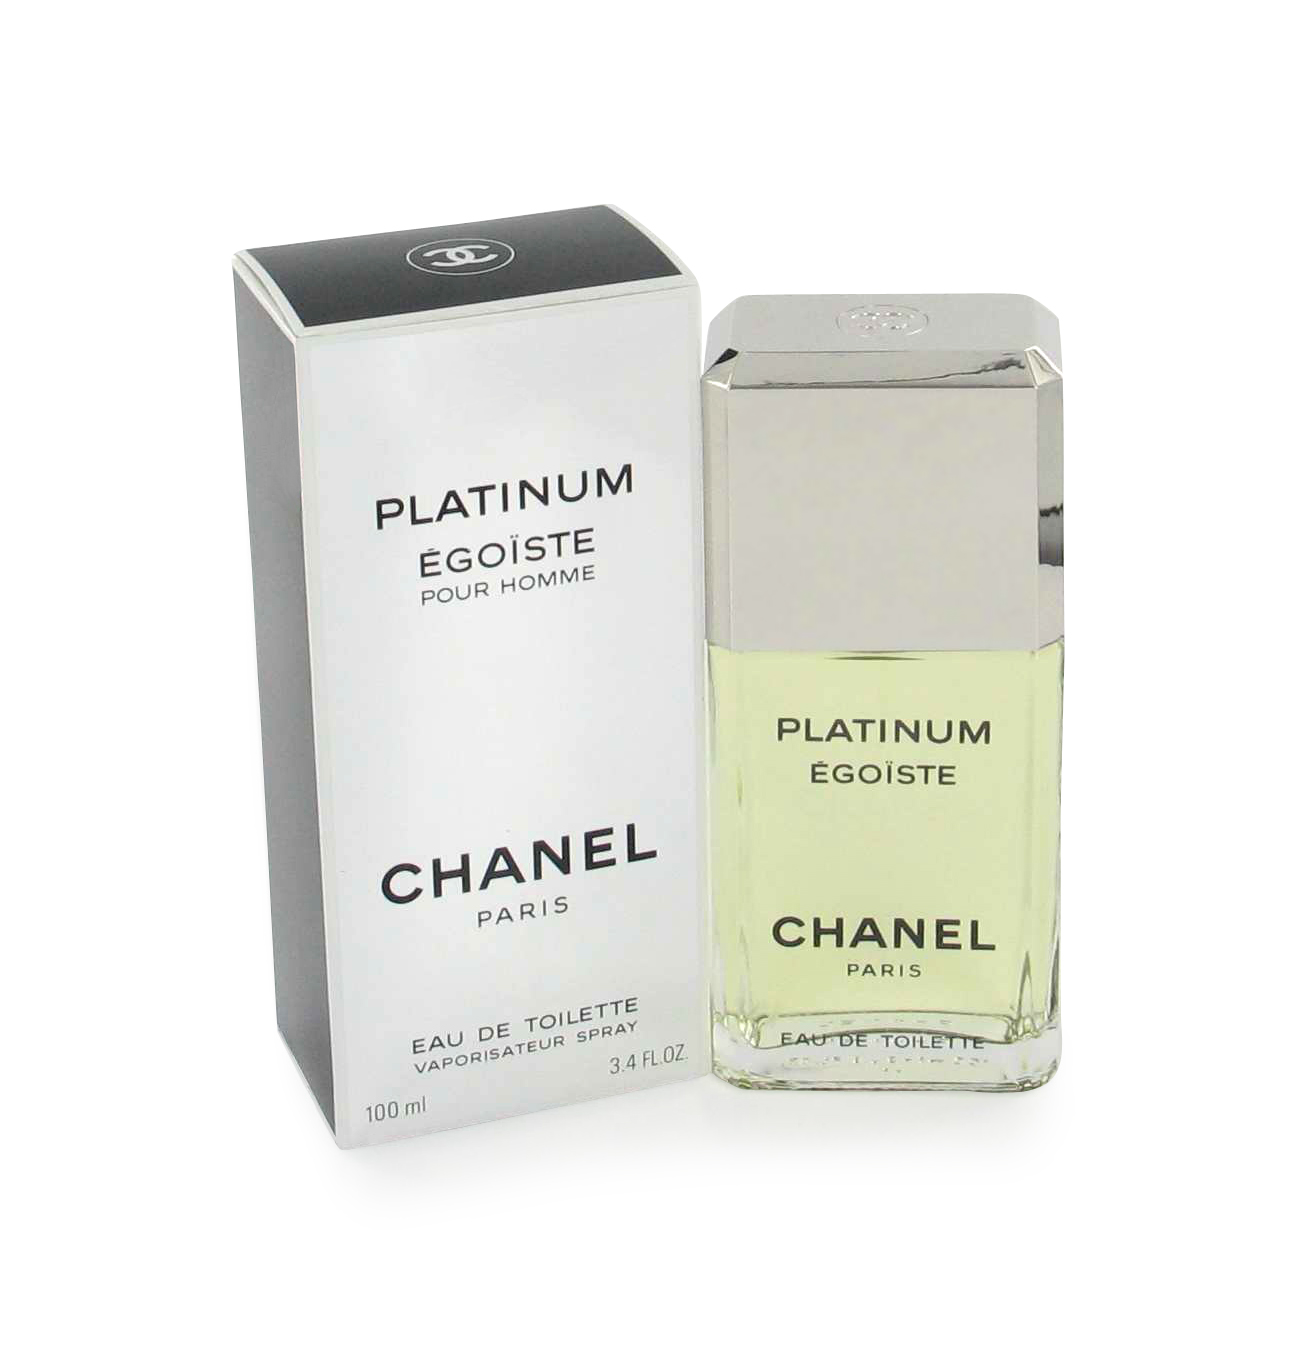 Egoiste Platinum by Chanel for Men - Man Loves Cologne